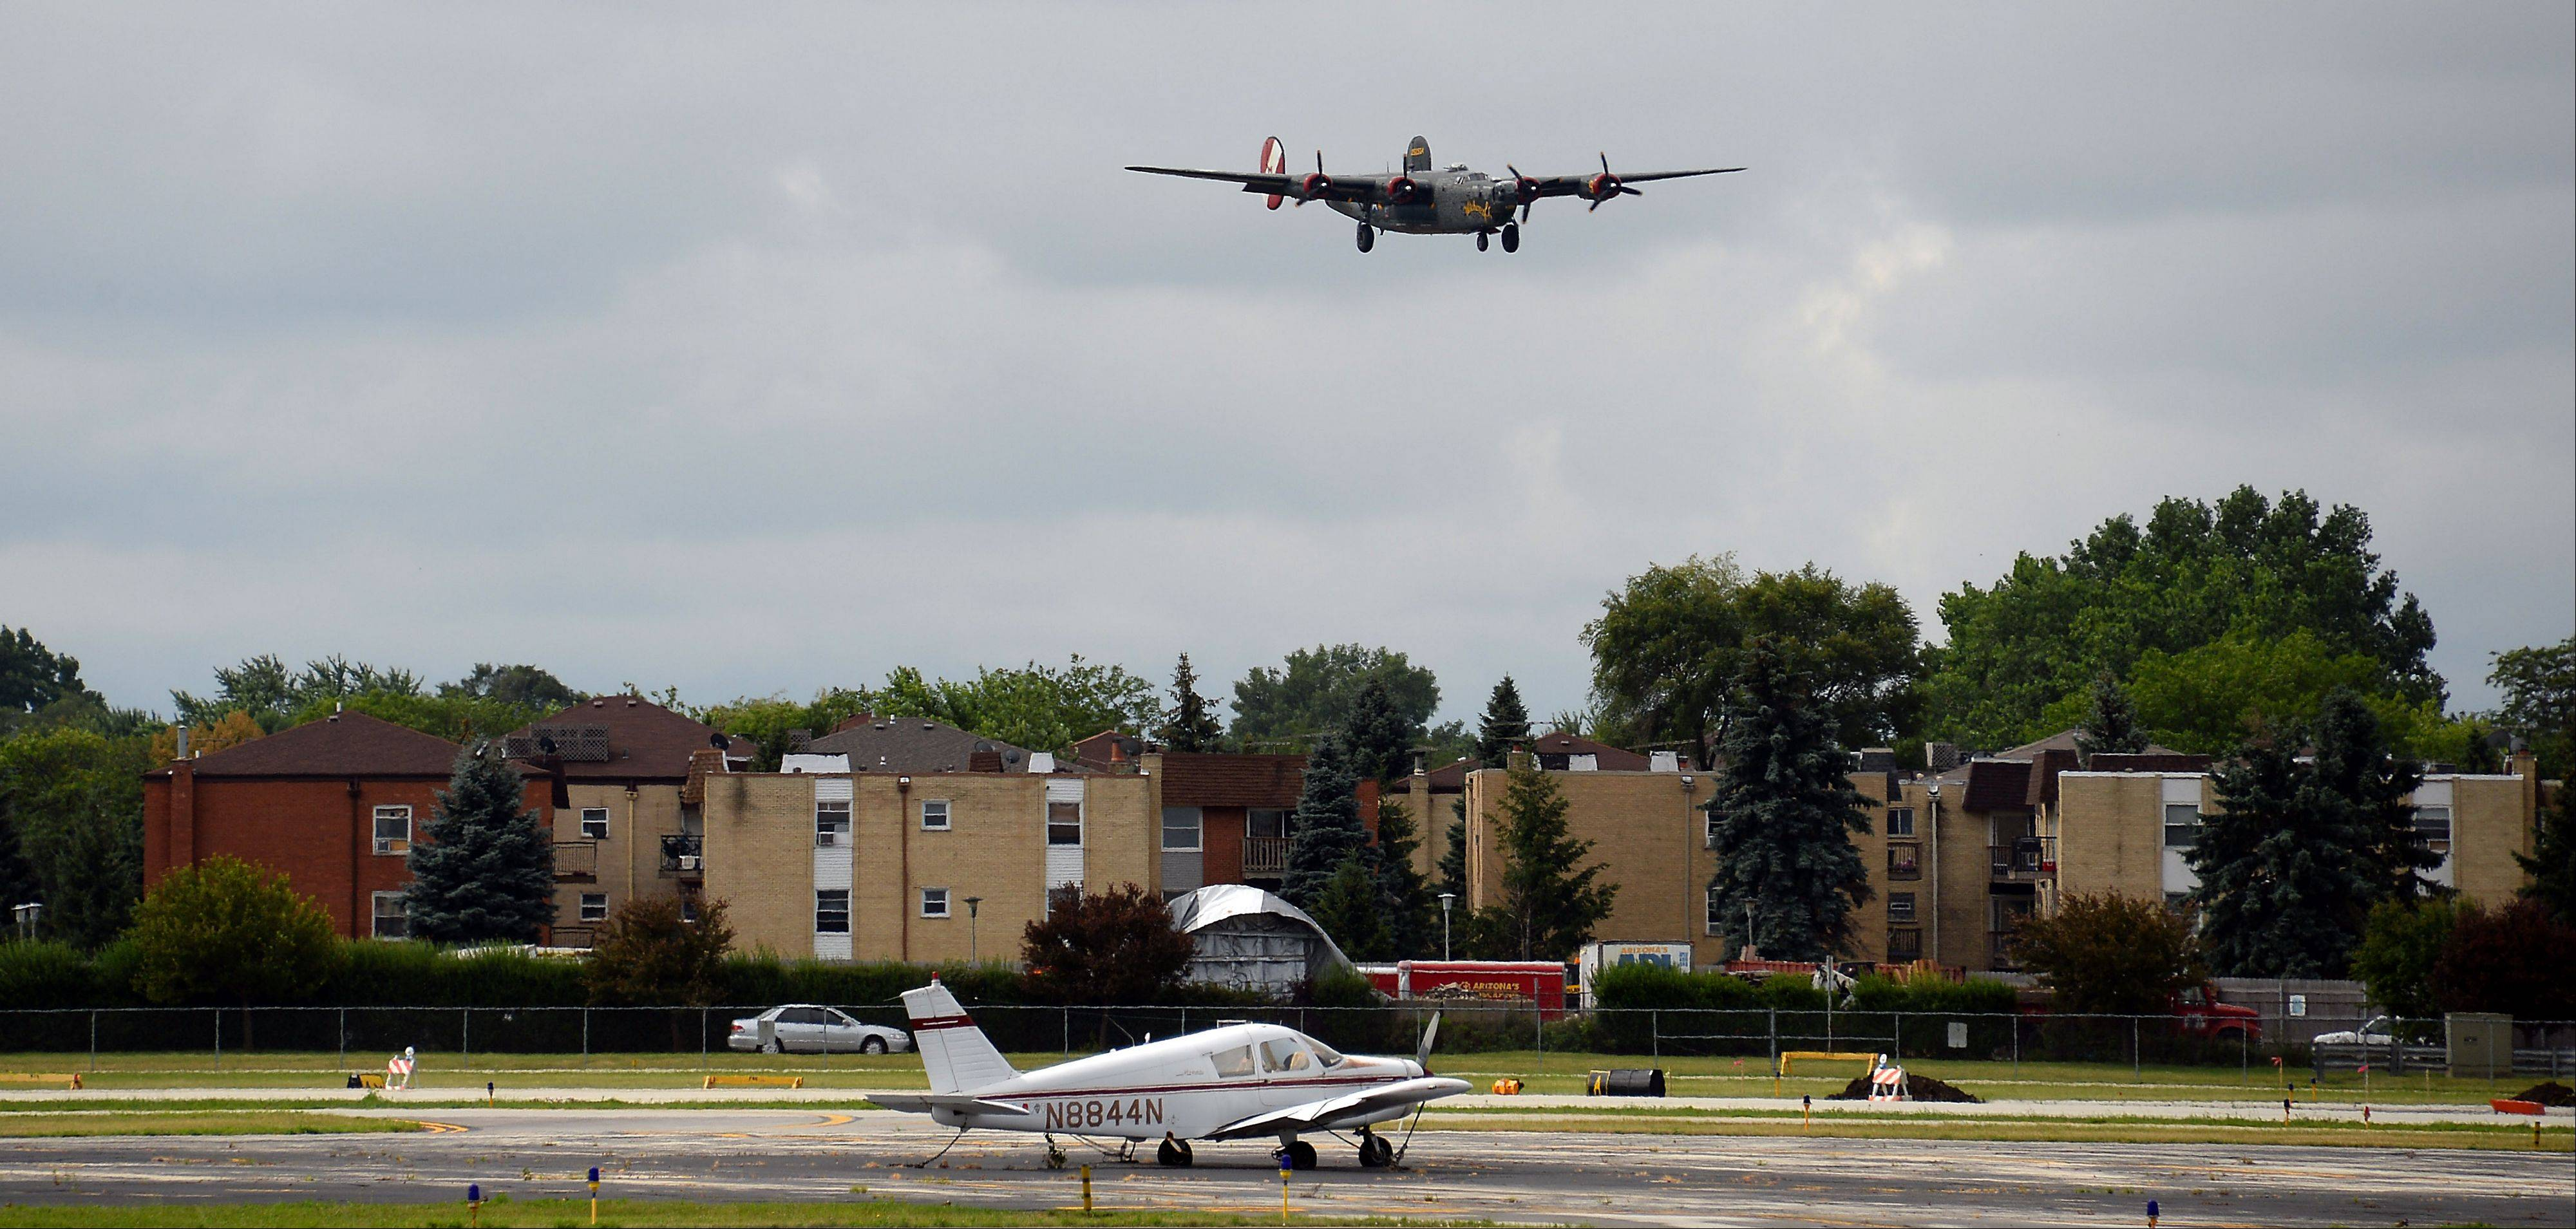 The B-24 Liberator lands at Chicago Executive Airport on Saturday as part of the 2013 Wings of Freedom Tour.